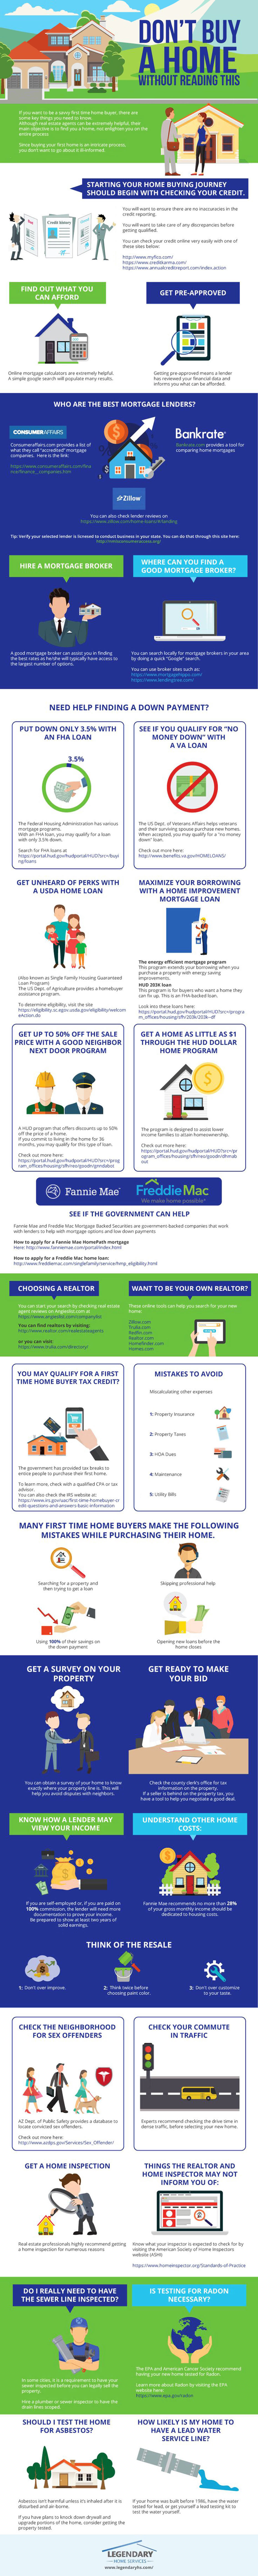 Home Buying Tips for First Time Buyers - Real Estate Infographic